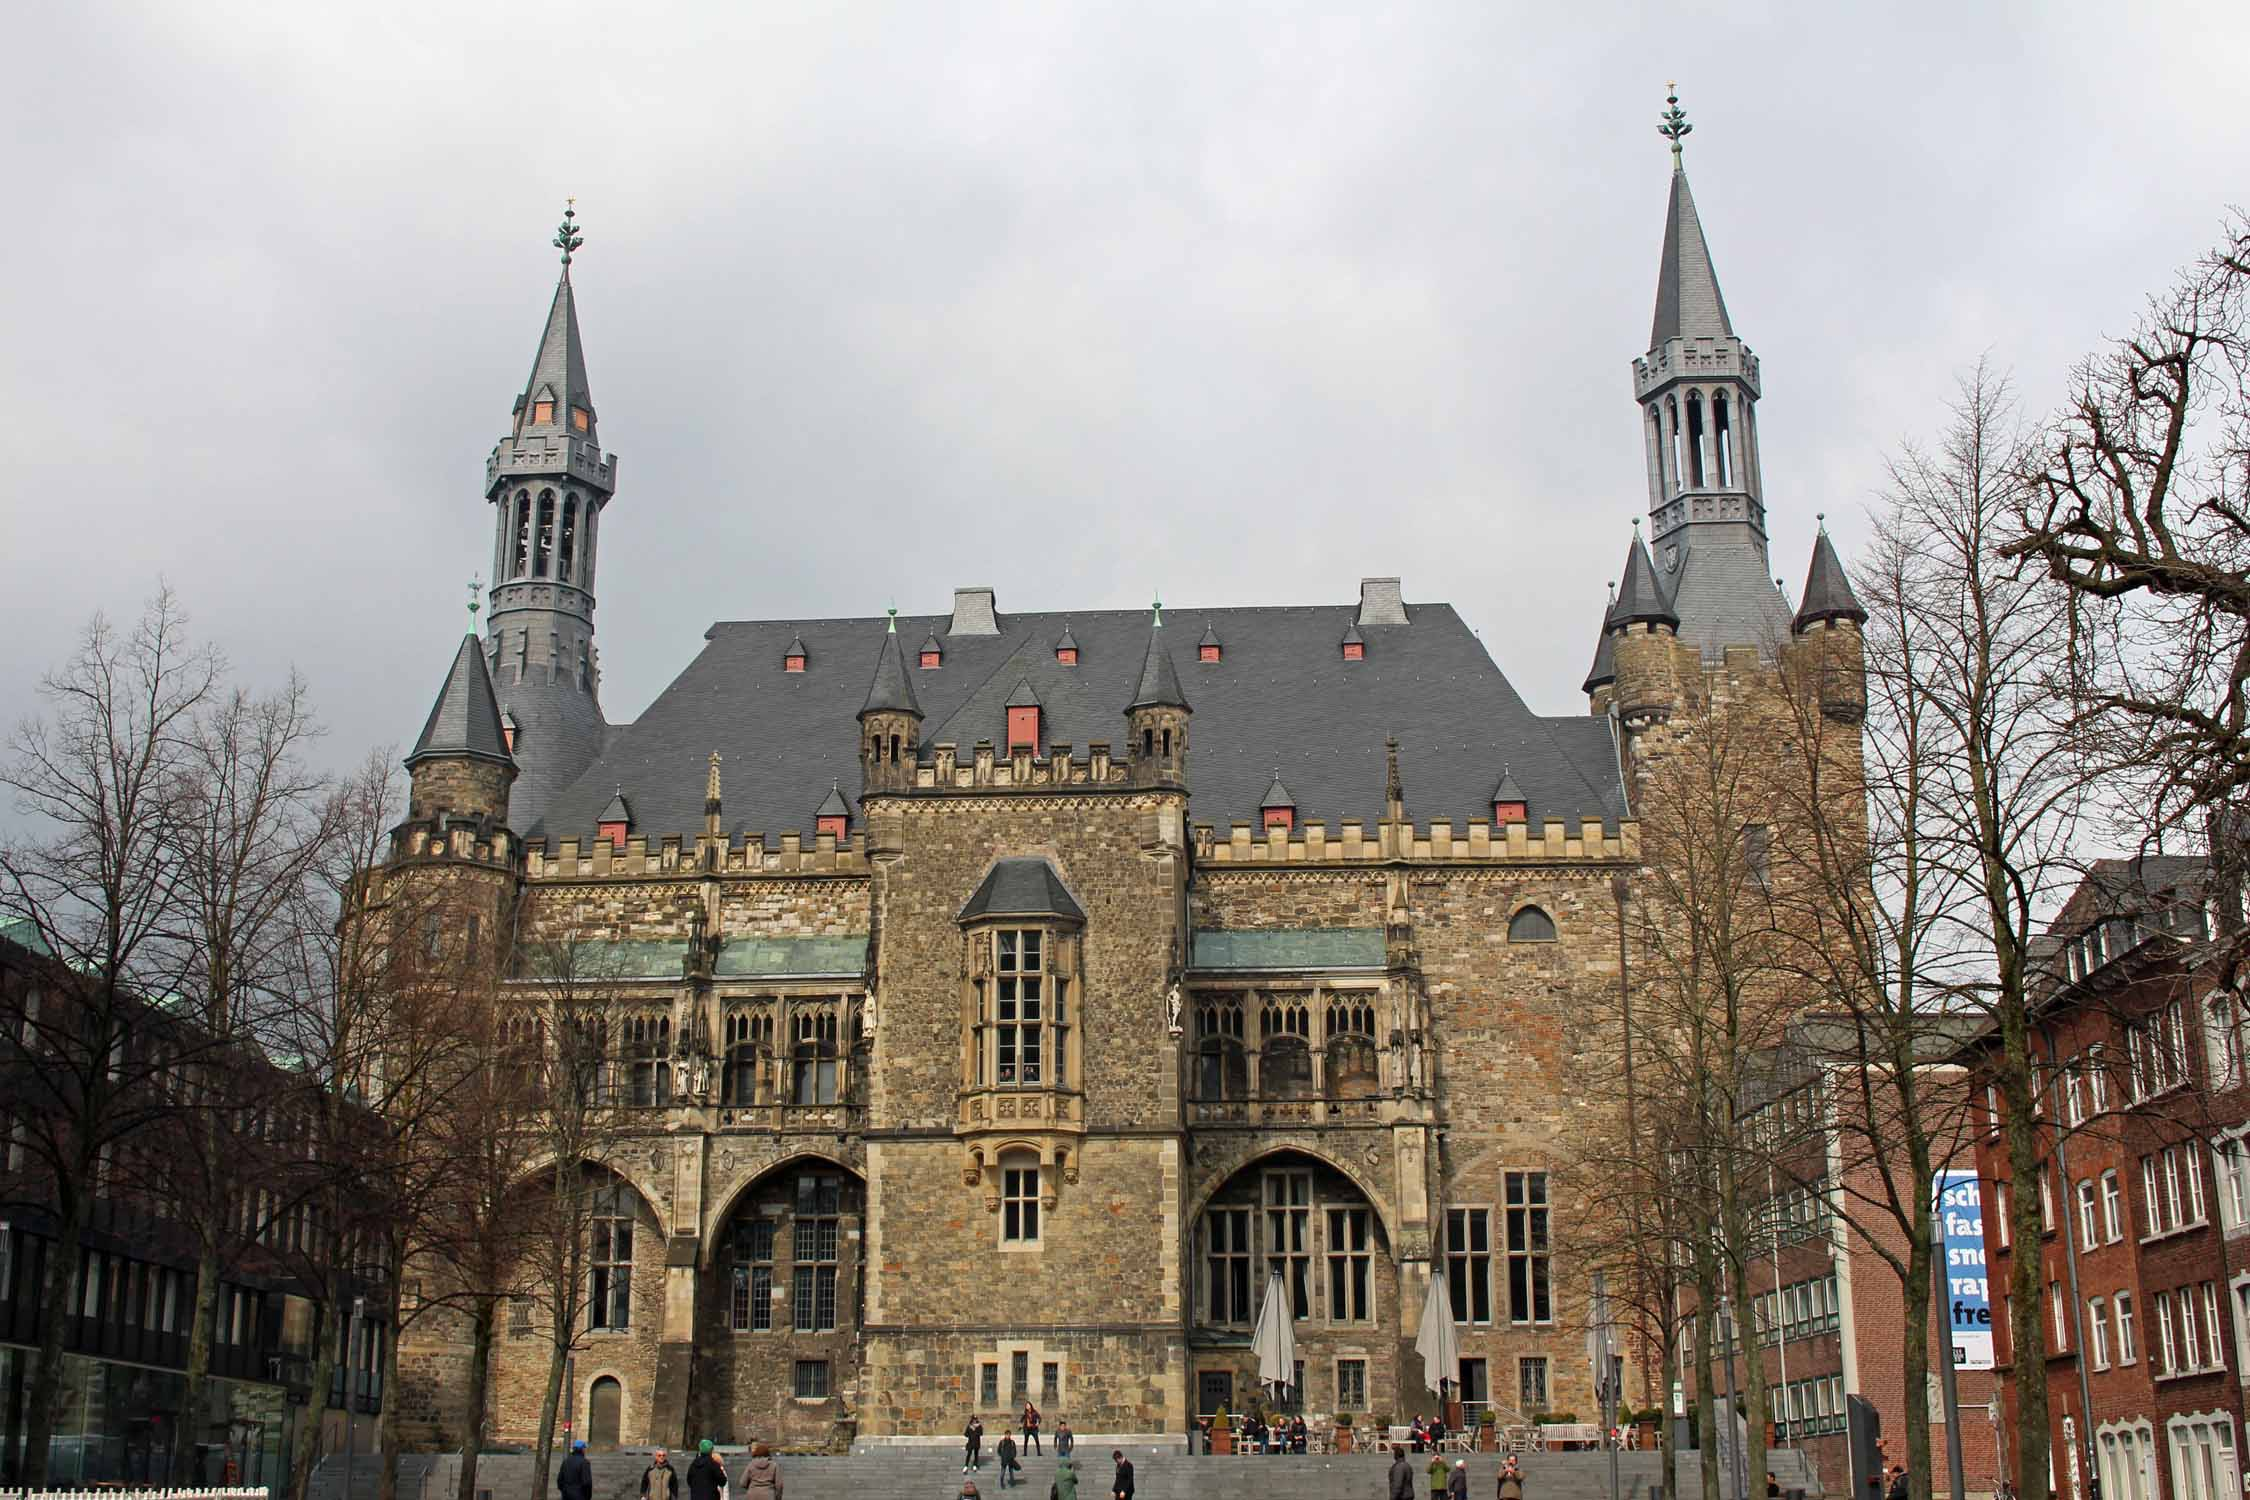 Aachen, Charlemagne's palace